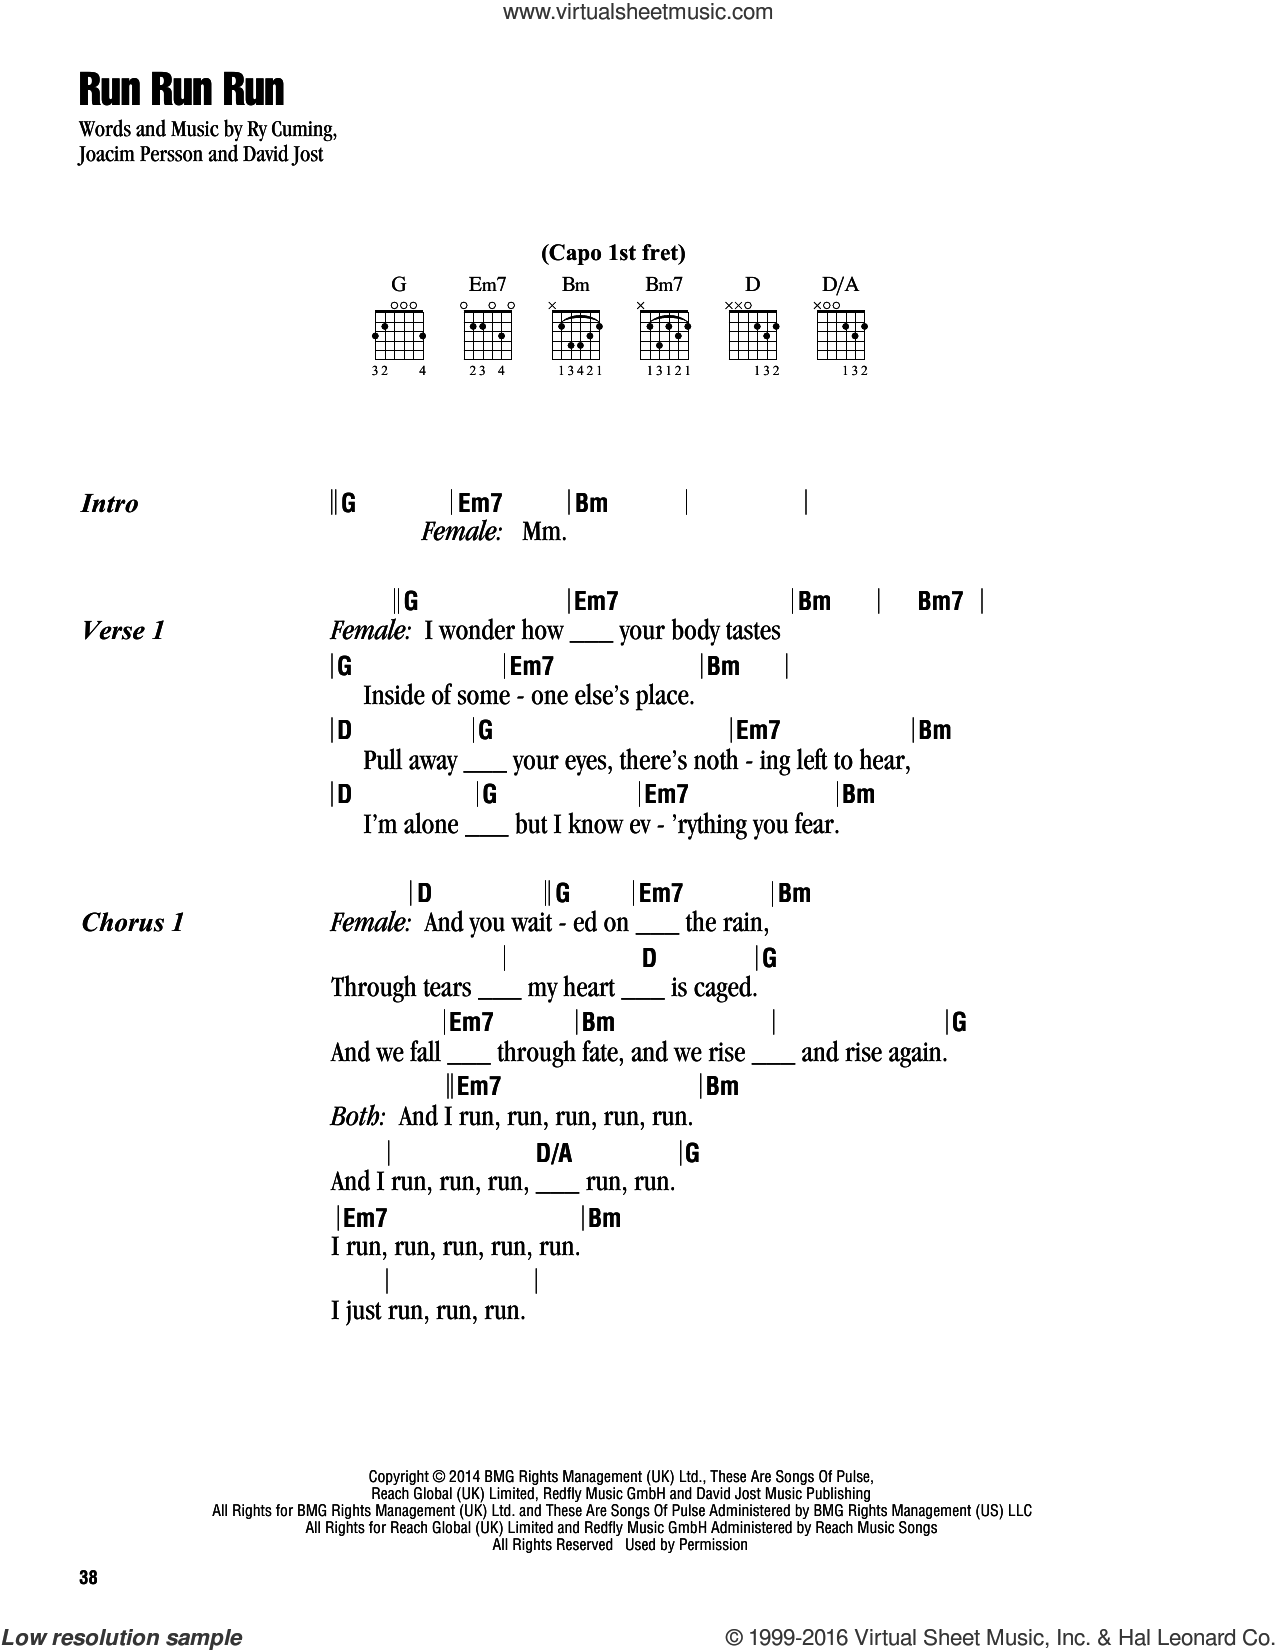 Run Run Run sheet music for guitar (chords) by Kelly Clarkson, David Jost, Joacim Persson and Ry Cuming, intermediate